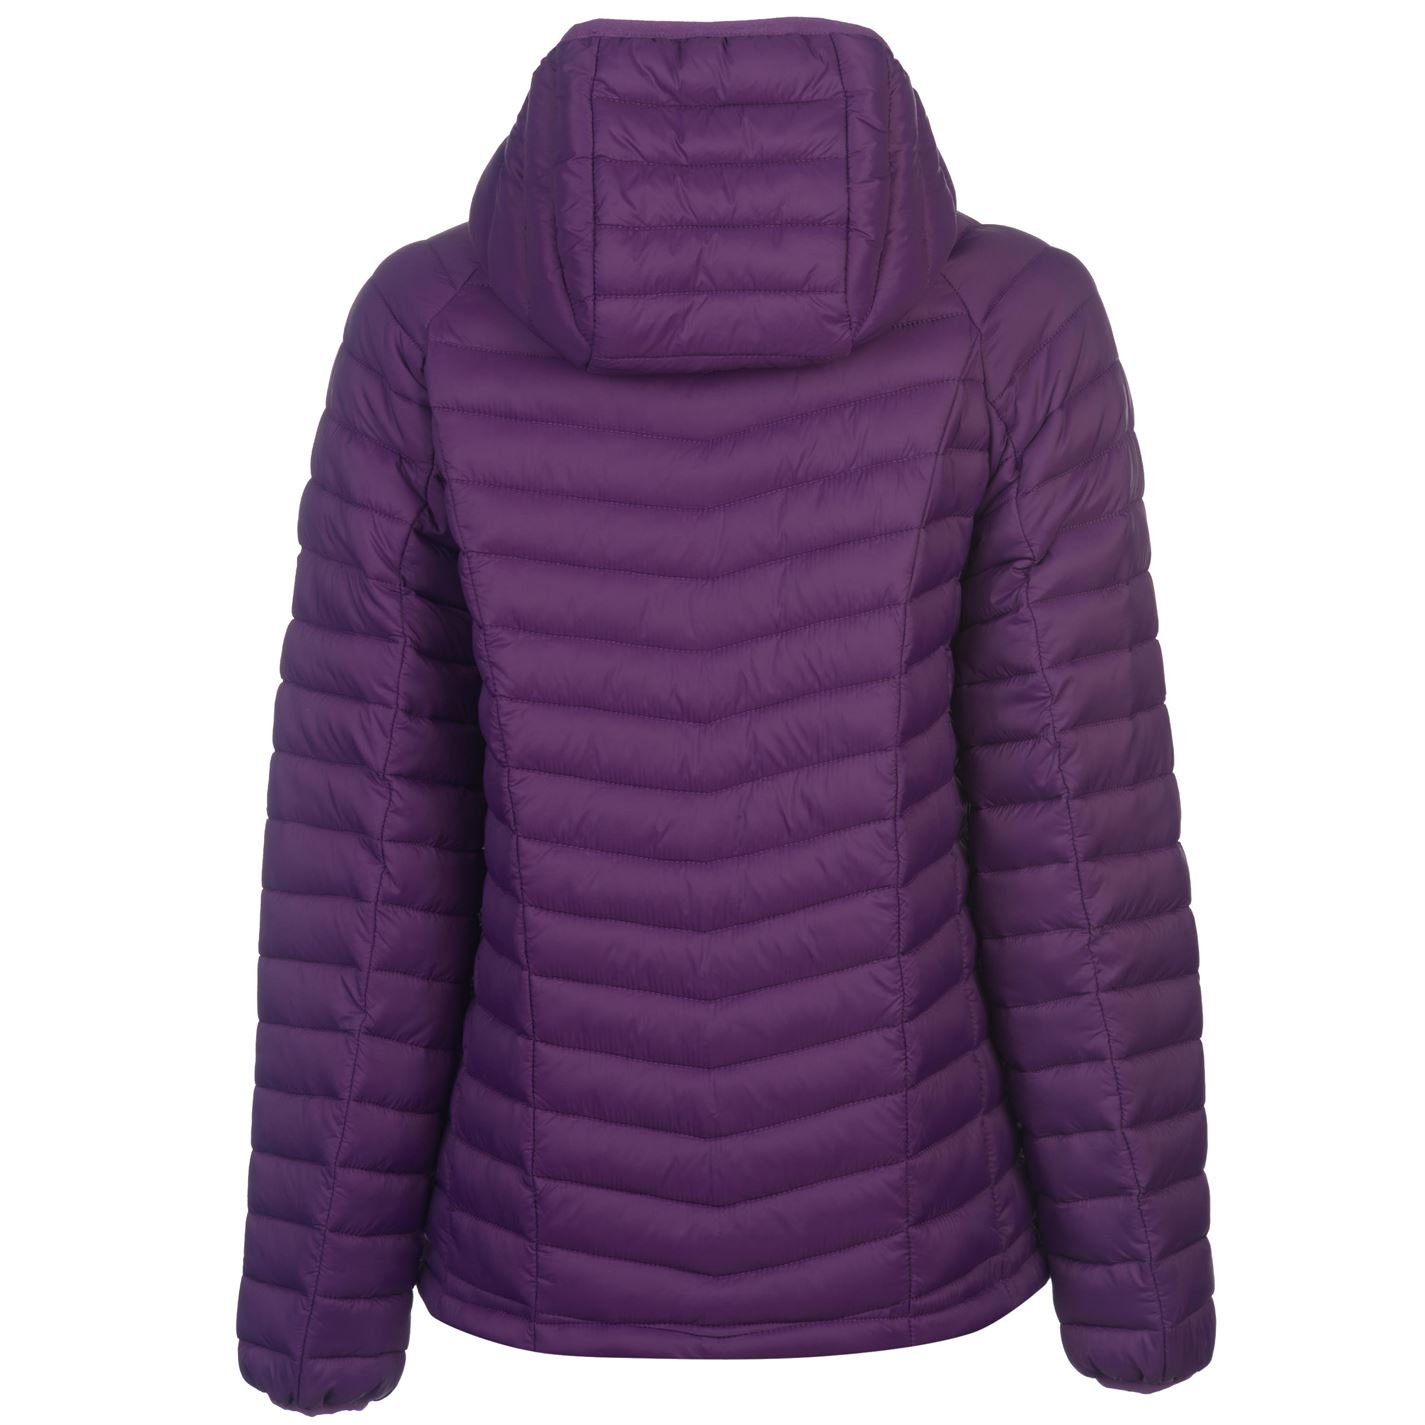 42d16059b Details about Karrimor Womens Hot Crag Insulated Jacket Puffer Coat Top  Long Sleeve Chin Guard